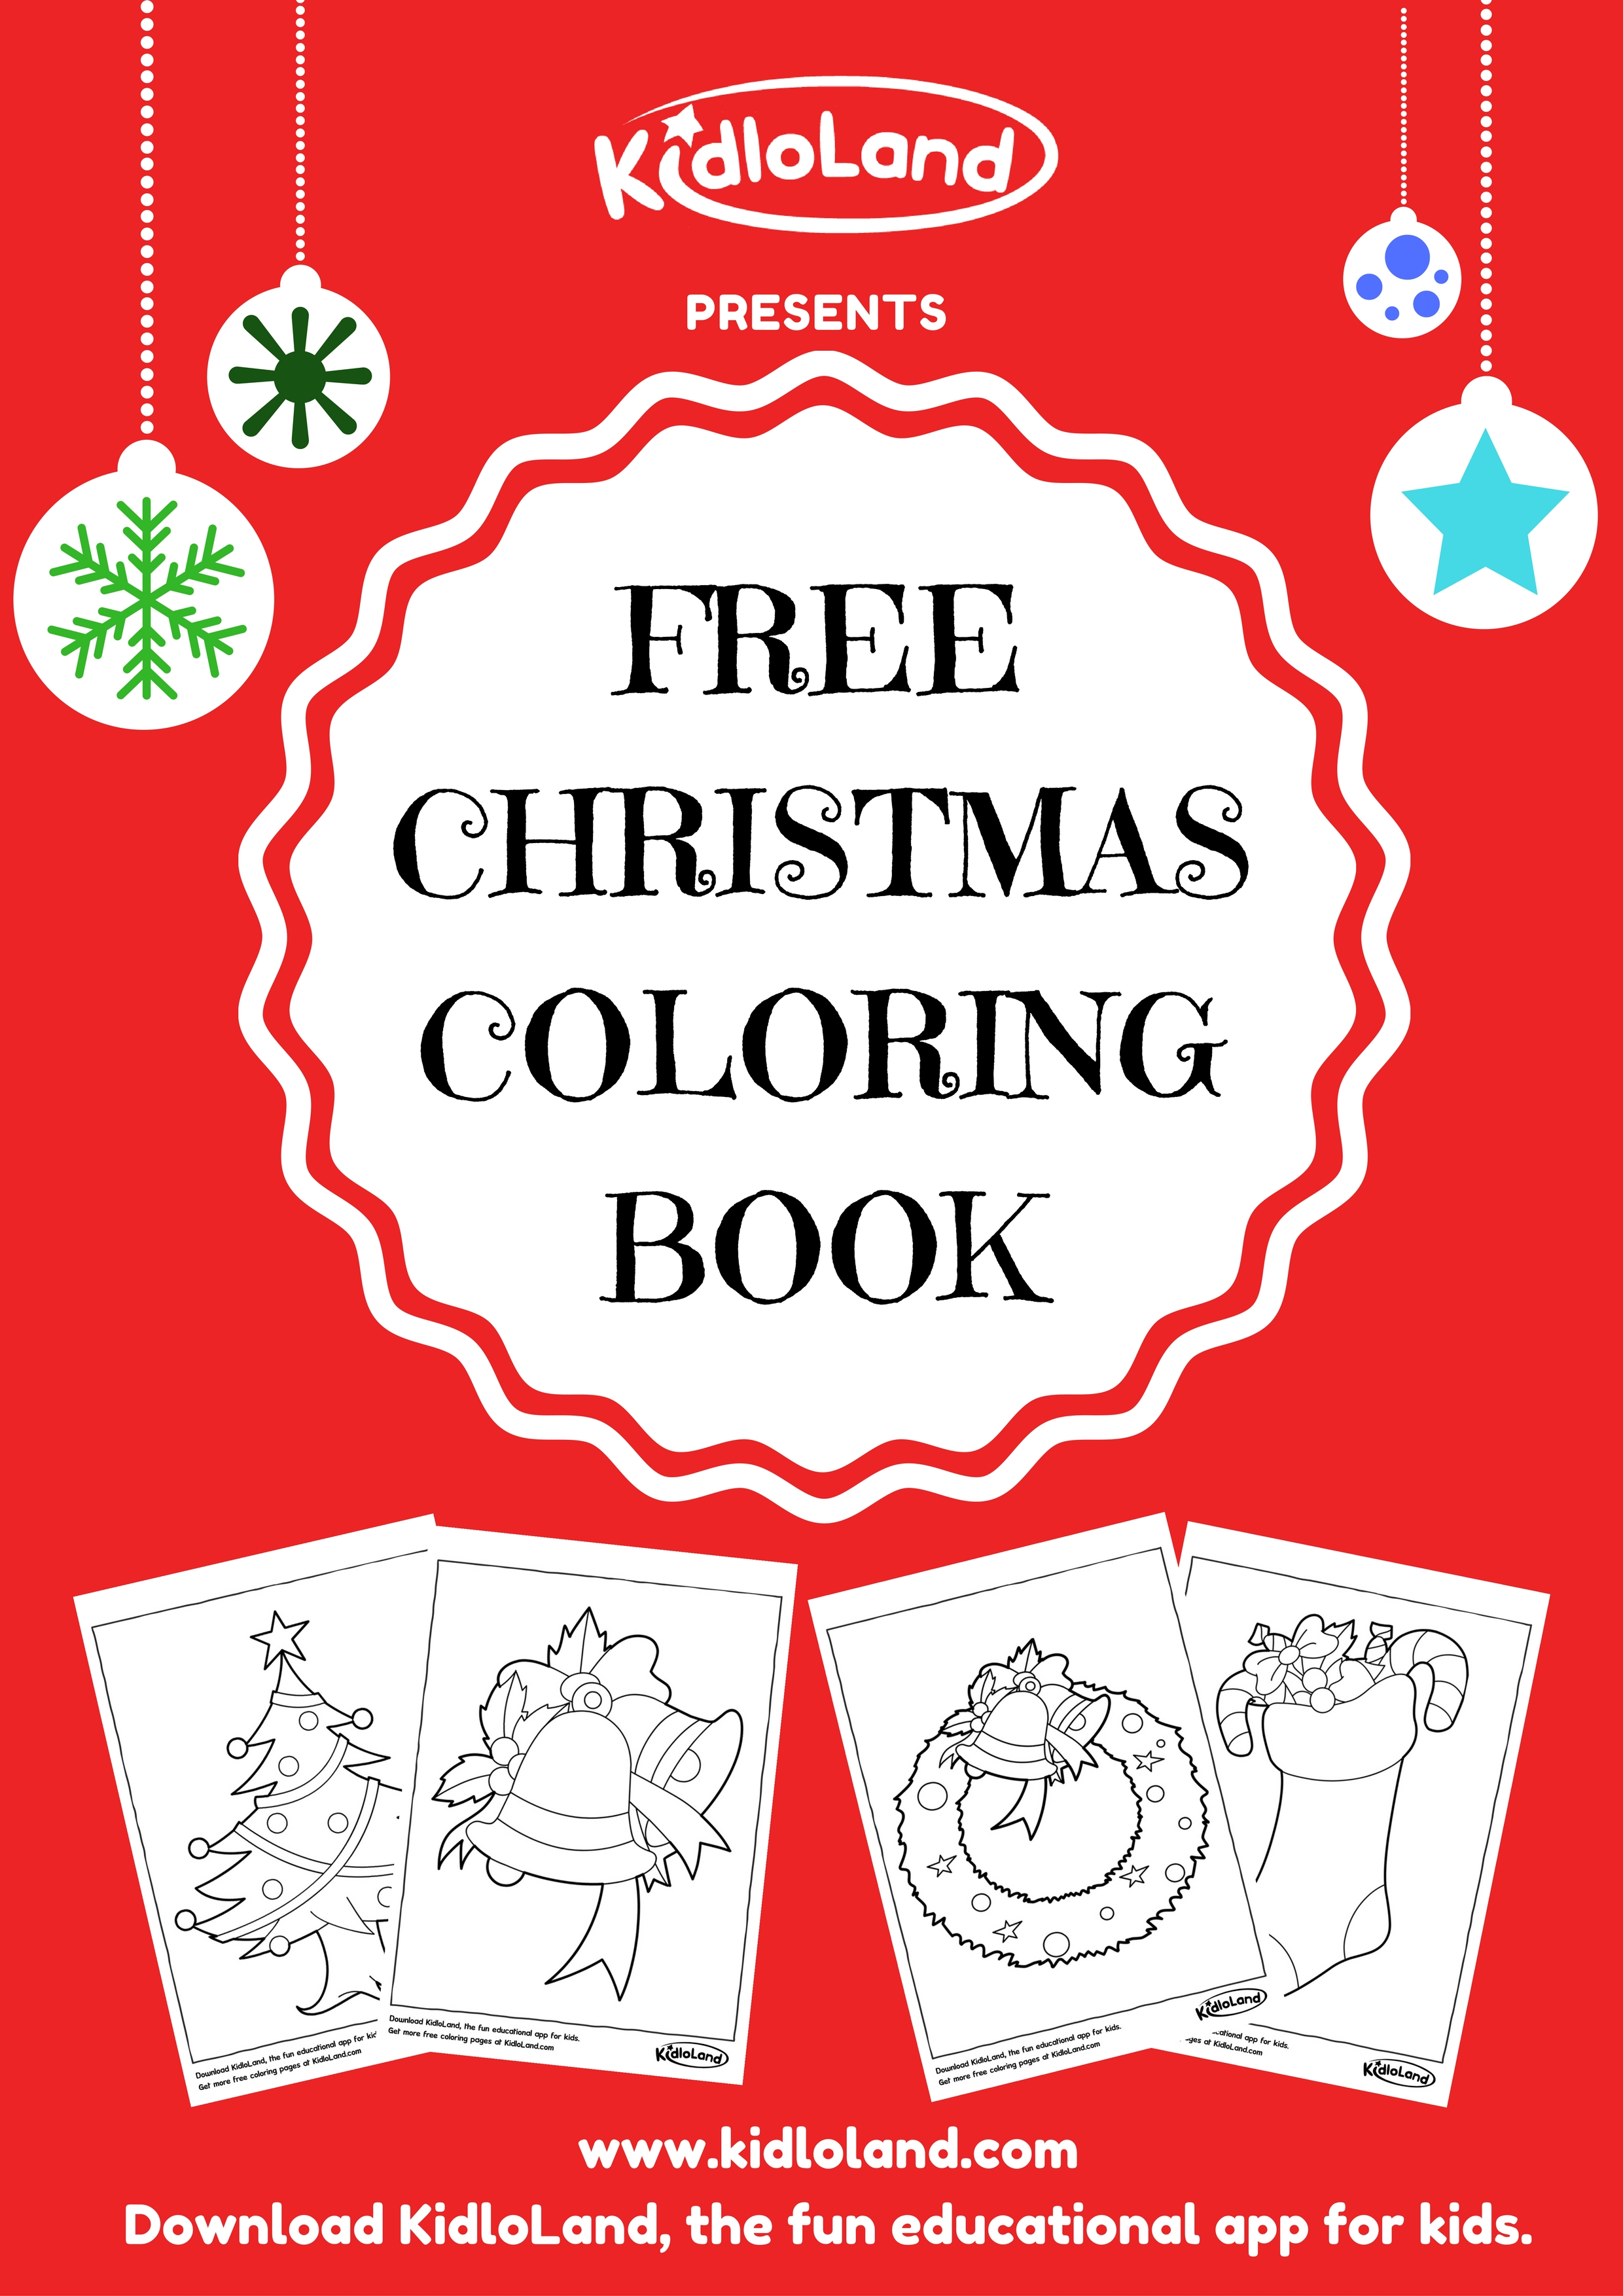 Christmas Coloring Toddlers With FREE CHRISTMAS COLORING BOOK KidloLand